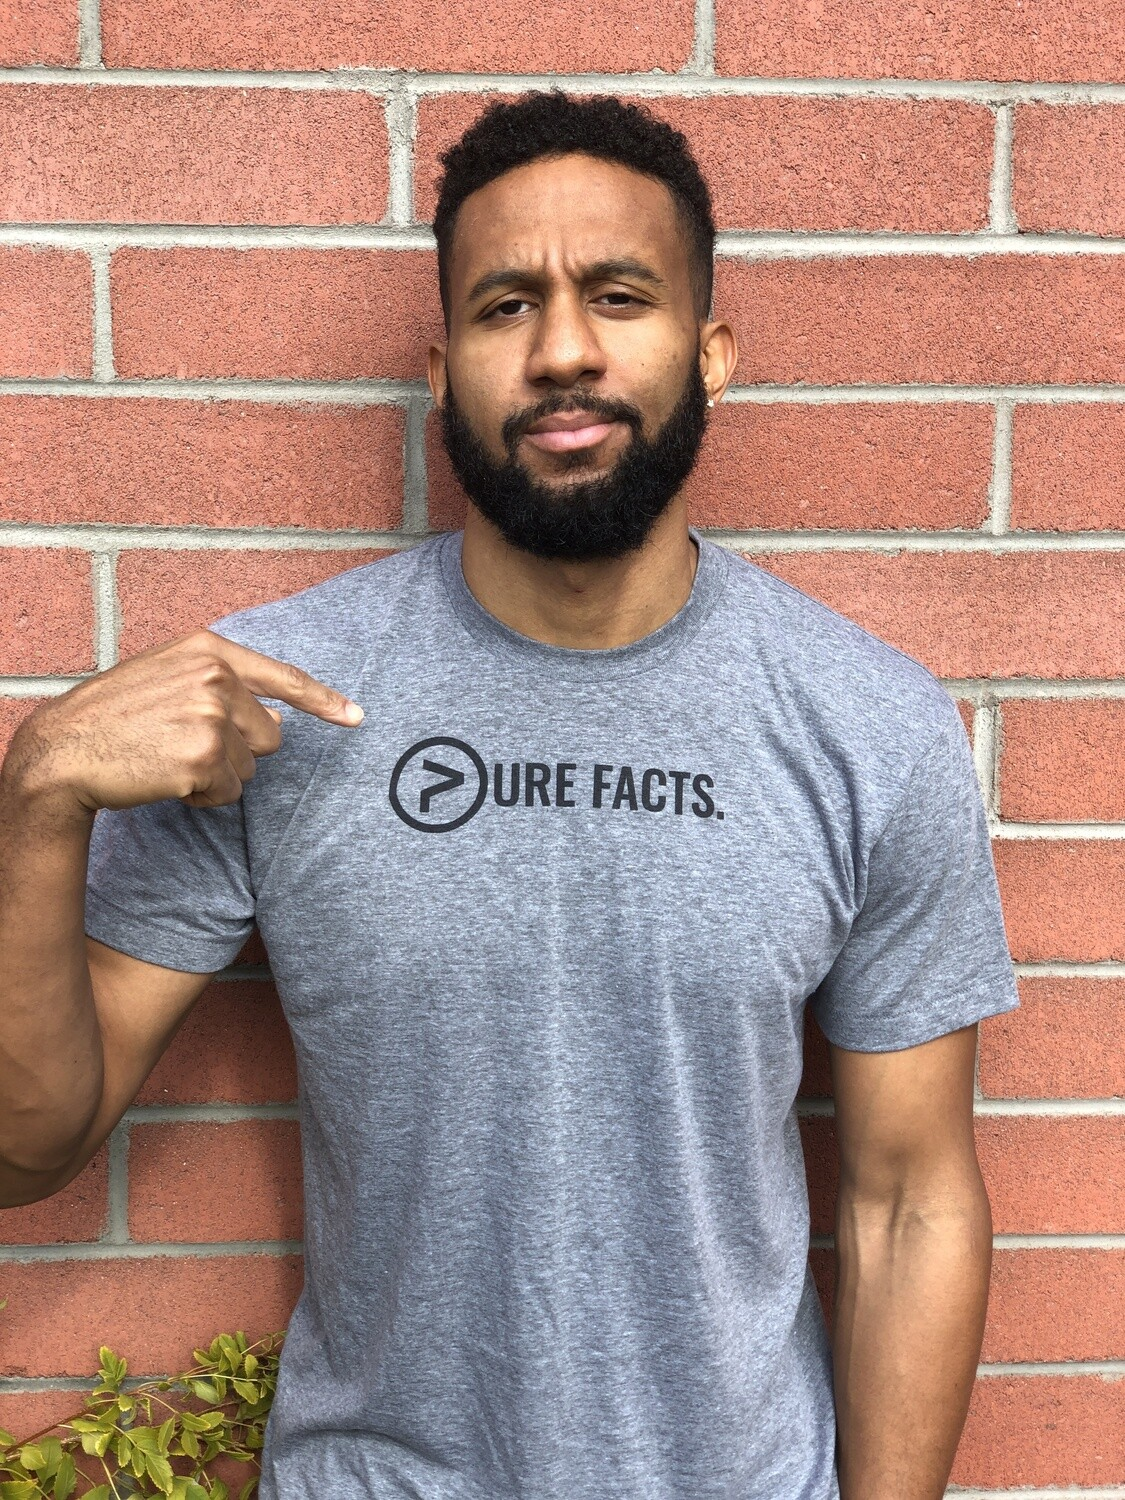 Pure Facts Tri-Blend Tee - (Unisex)